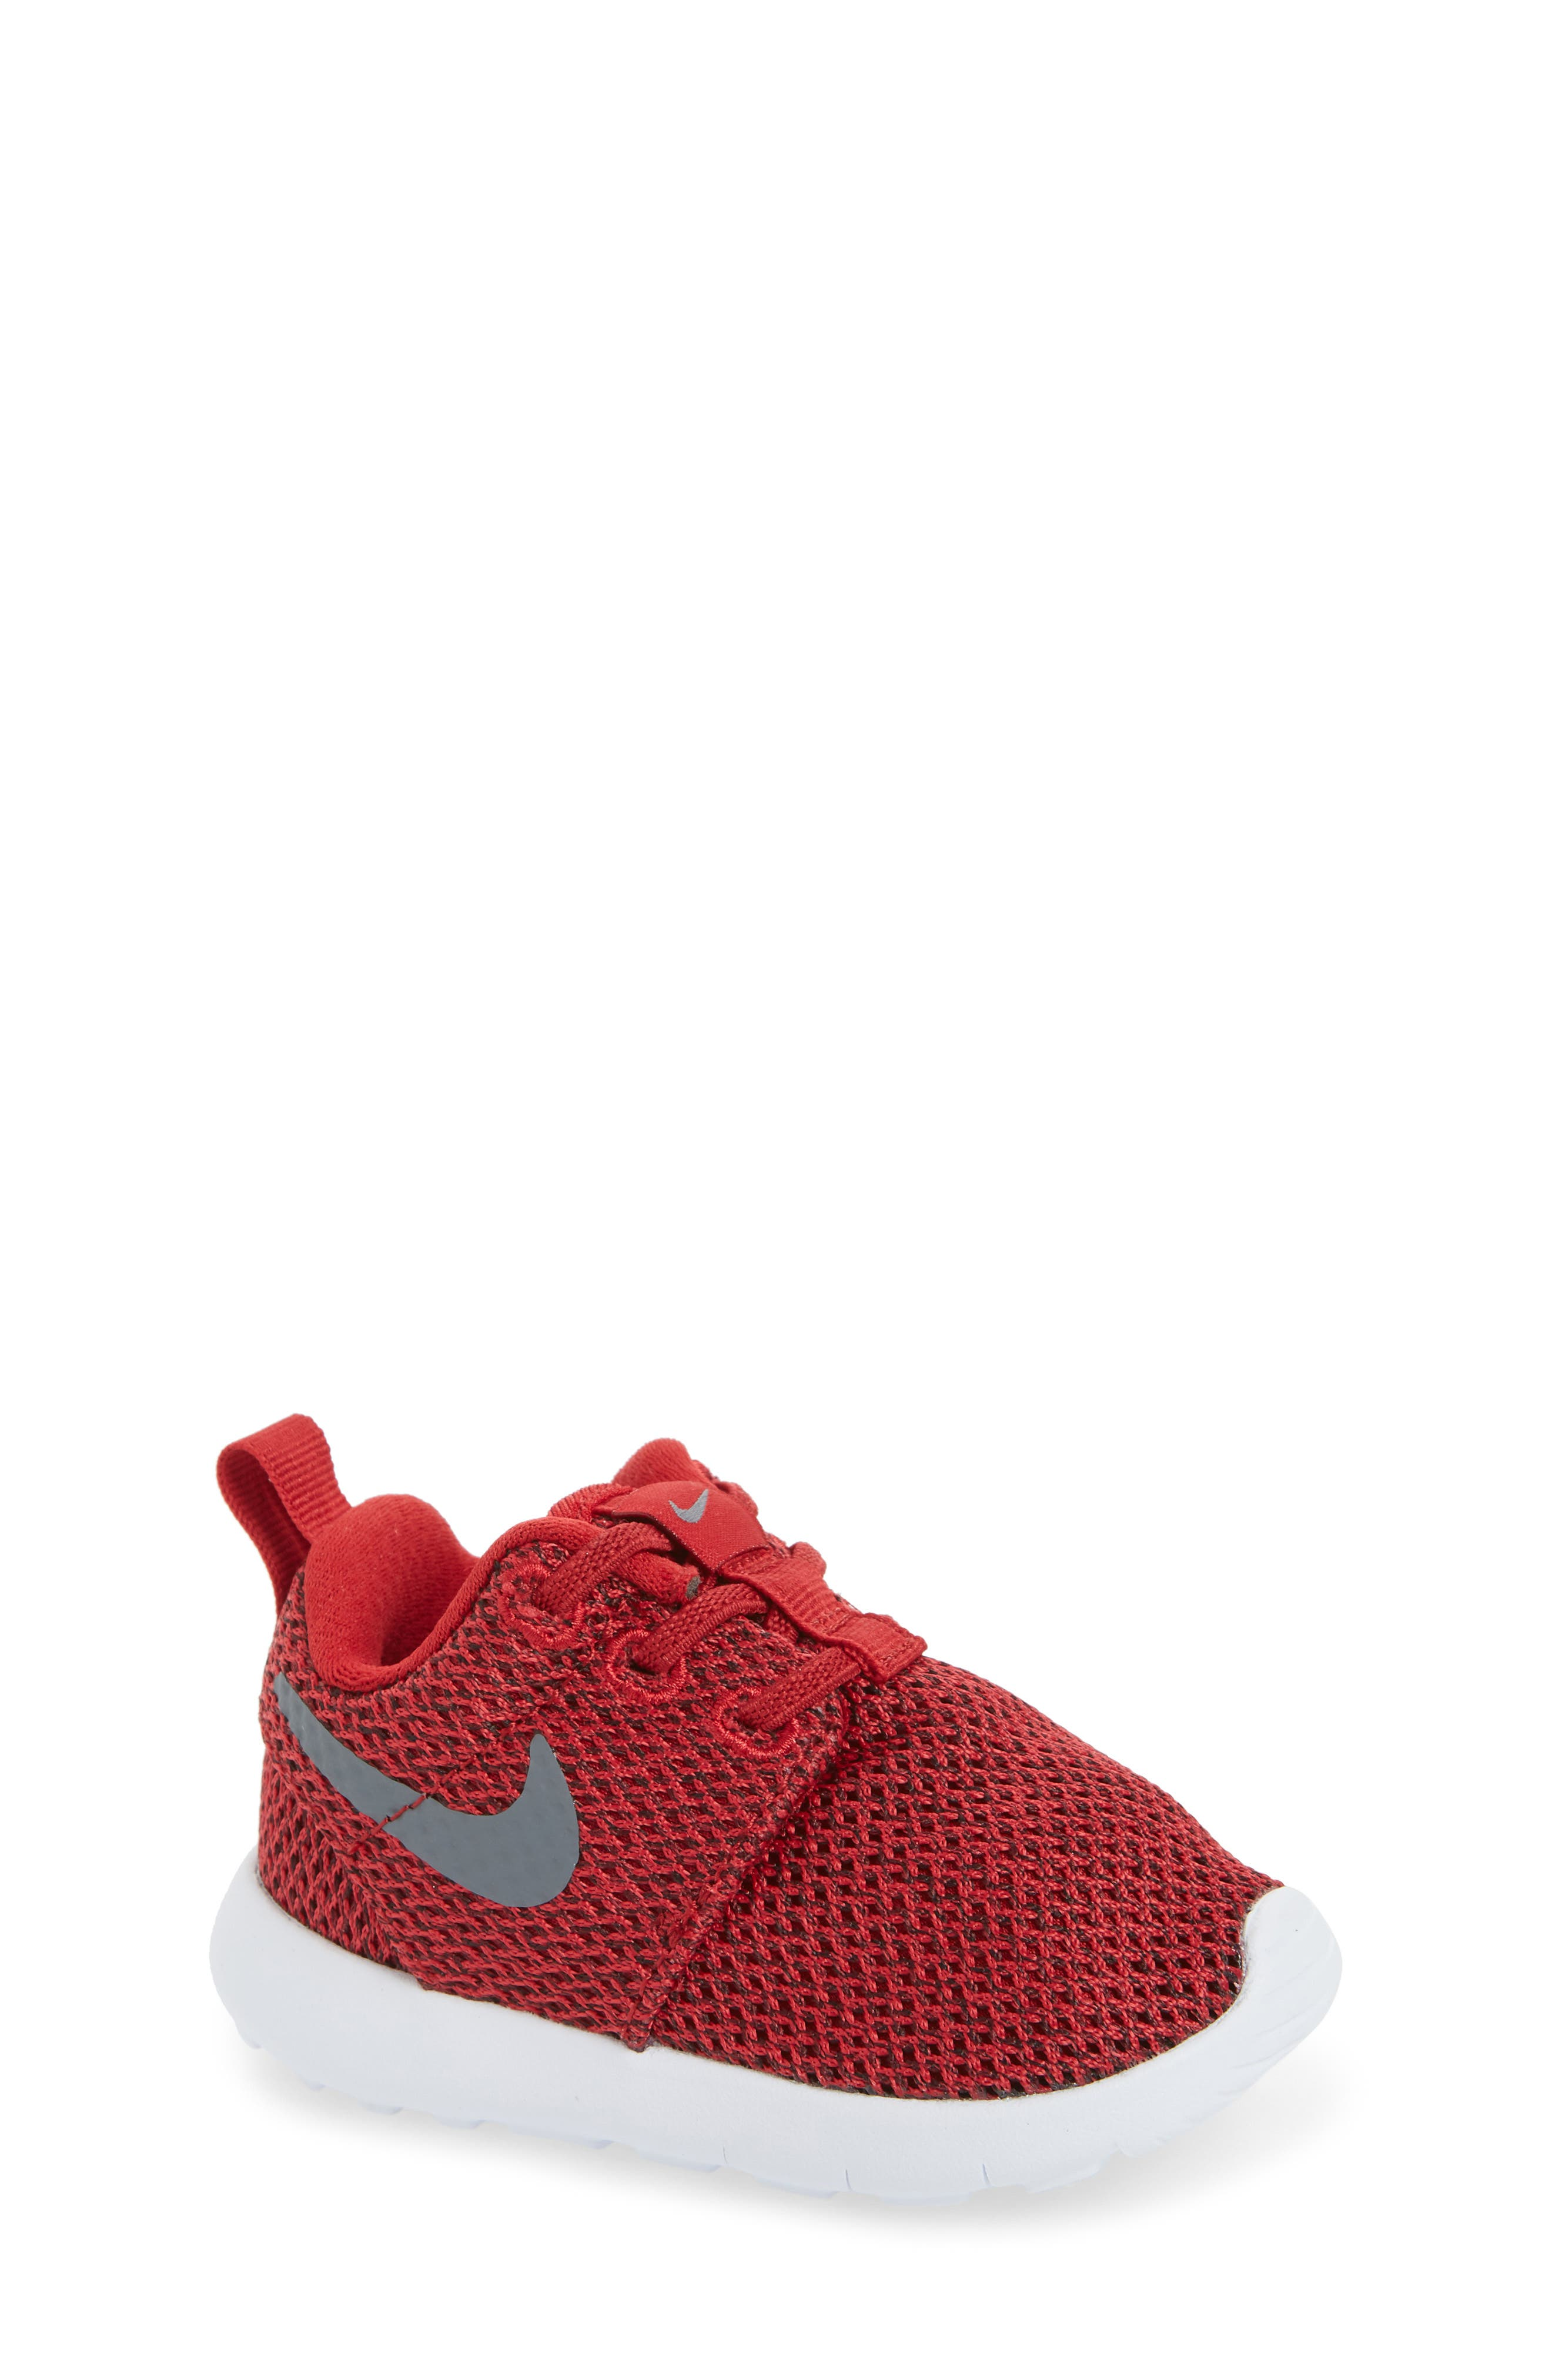 'Roshe Run' Sneaker,                             Main thumbnail 1, color,                             Gym Red/ Cool Grey/ Anthracite